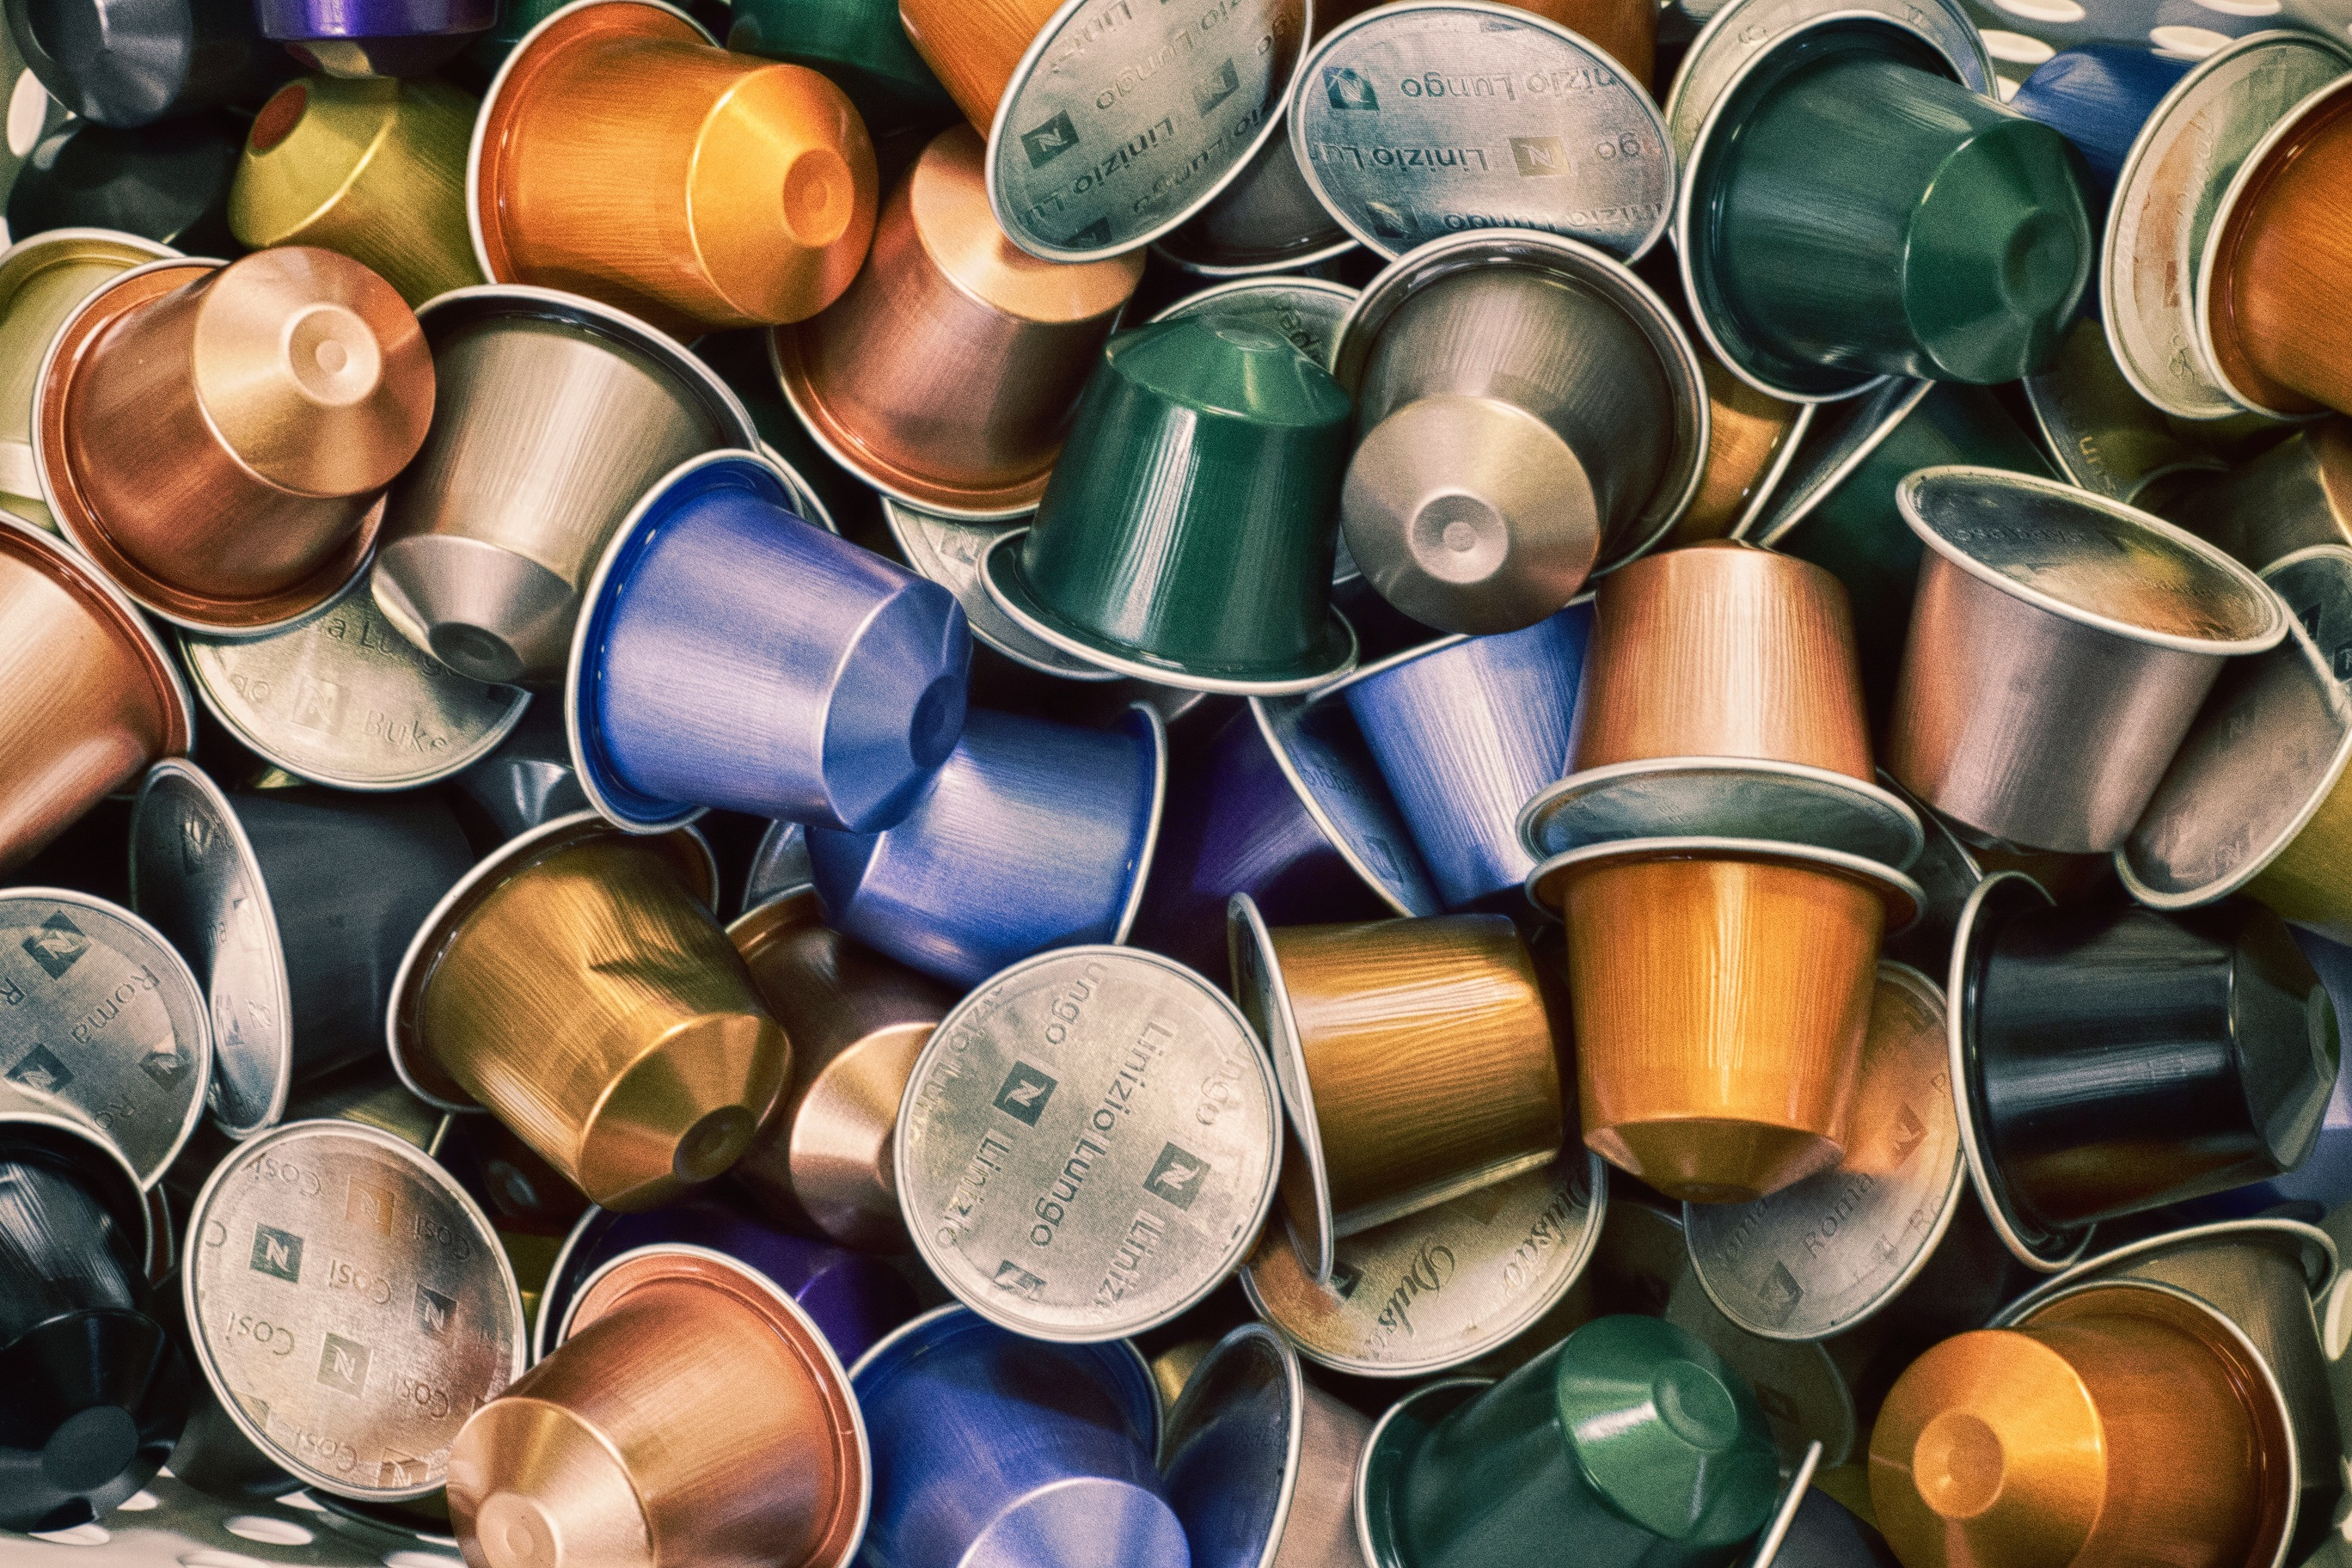 Coffee Pod Manufacturer – State of the Art Equipment in Victoria